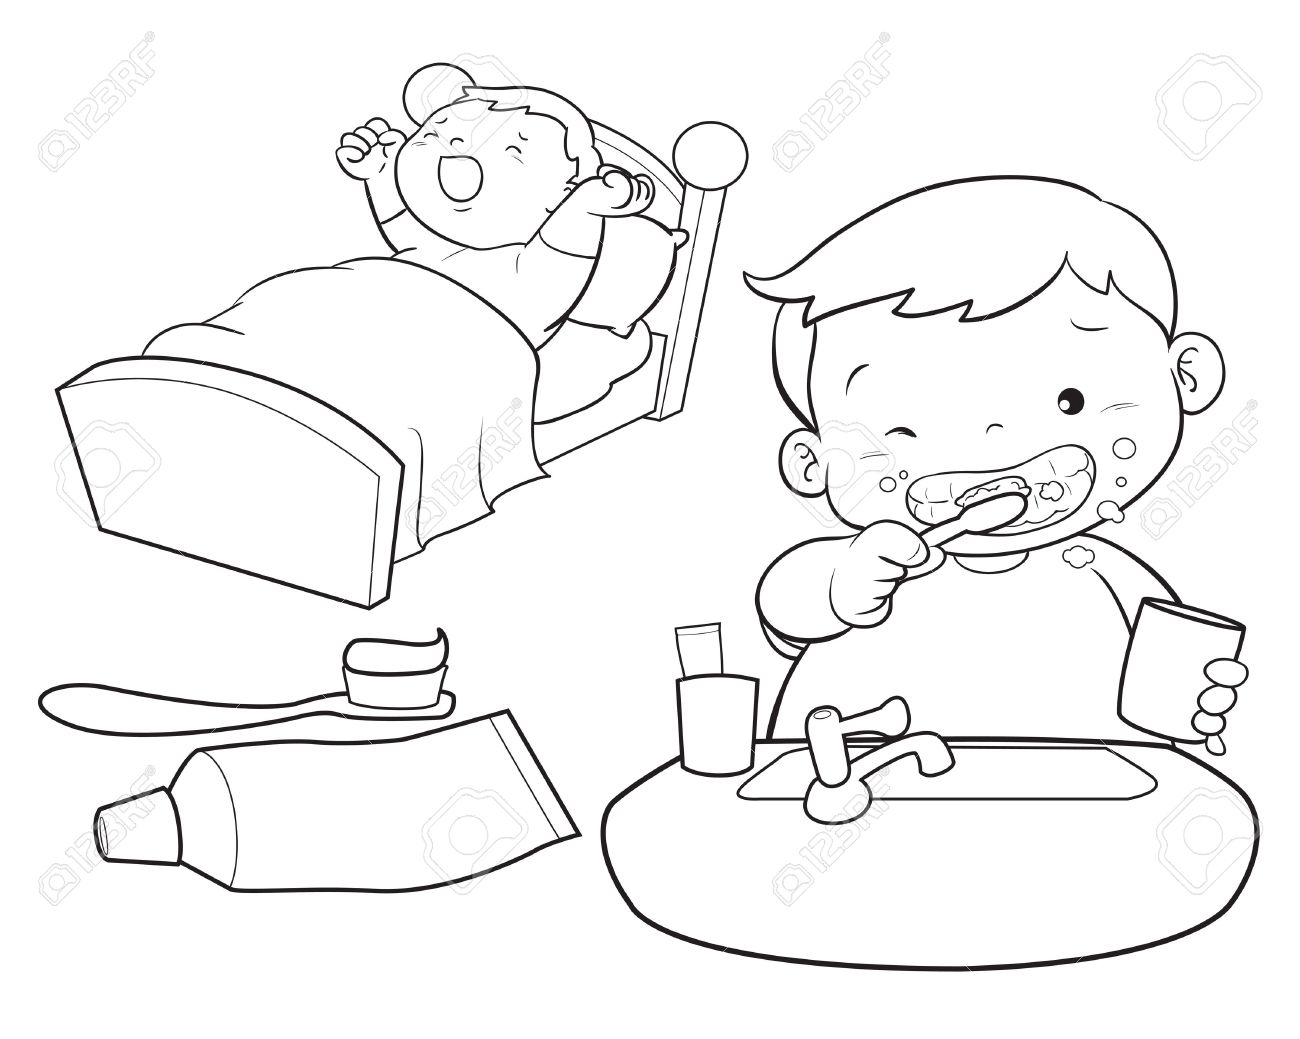 Brush Your Teeth Clipart Black And White.